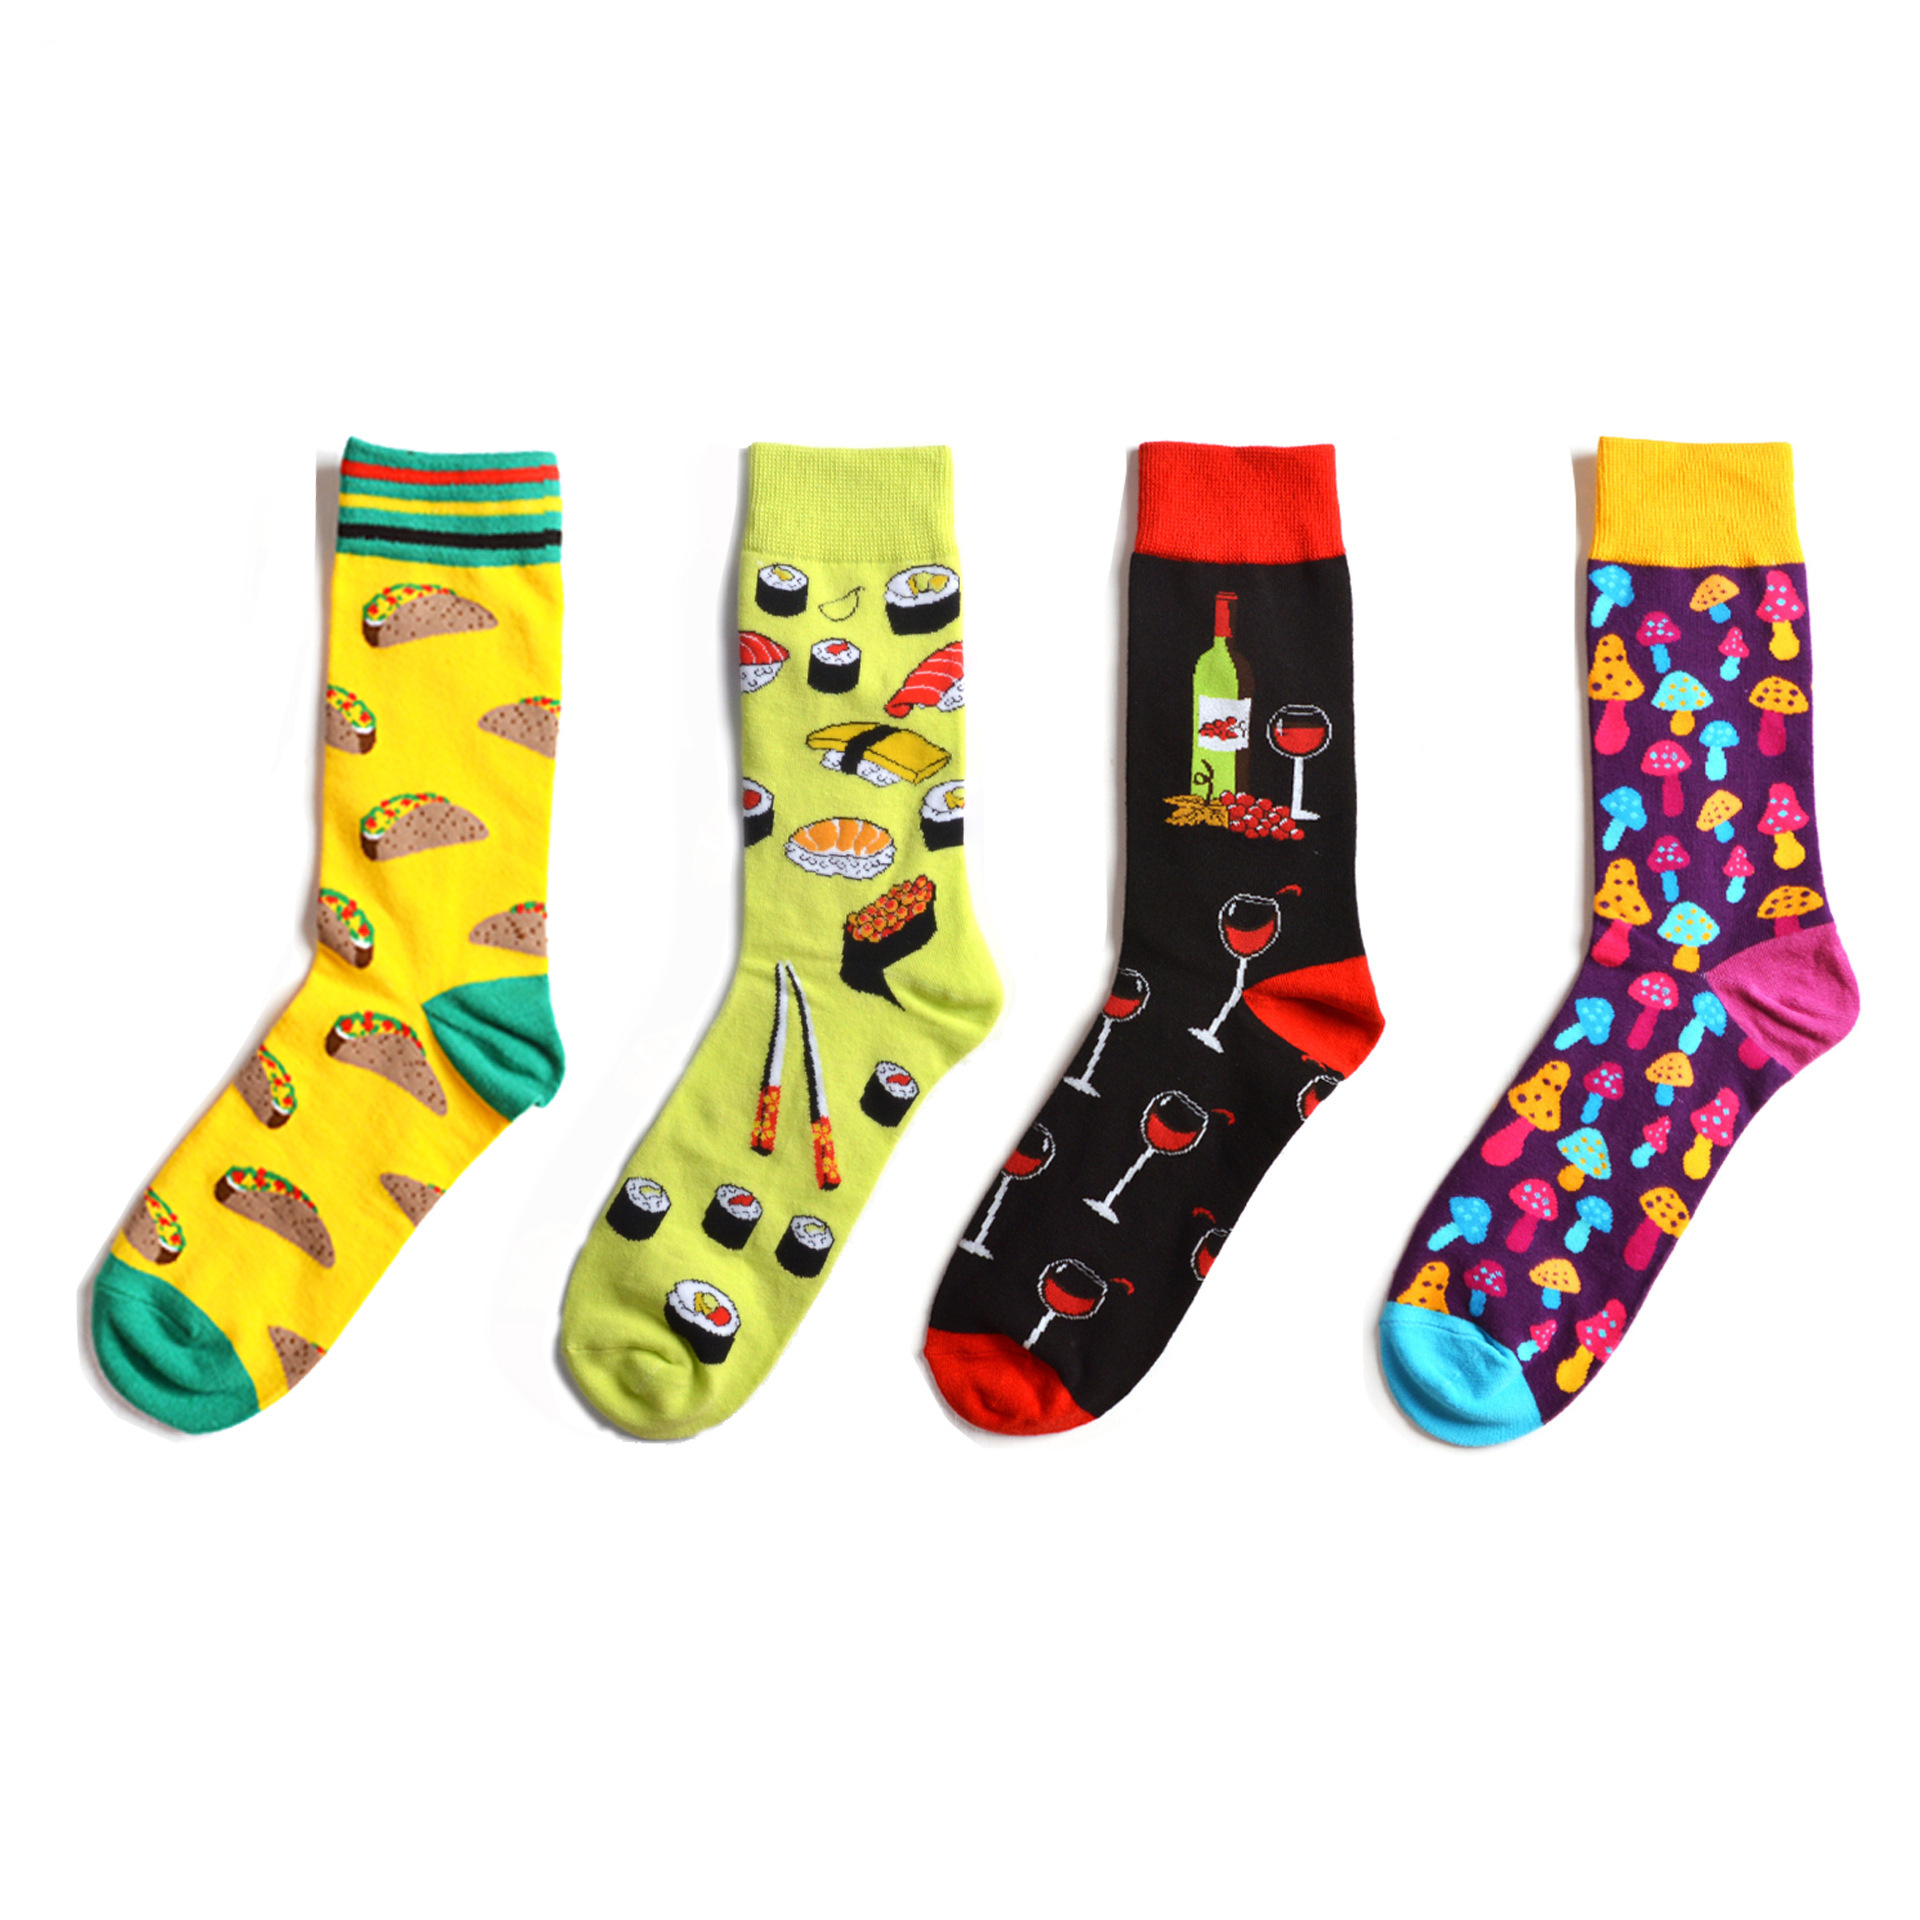 Colorful Sushi Mushroom Pattern Novelty Crew Socks Men's Funny Food Kawaii Sokken Creative Casual Cotton Party Socks For Male